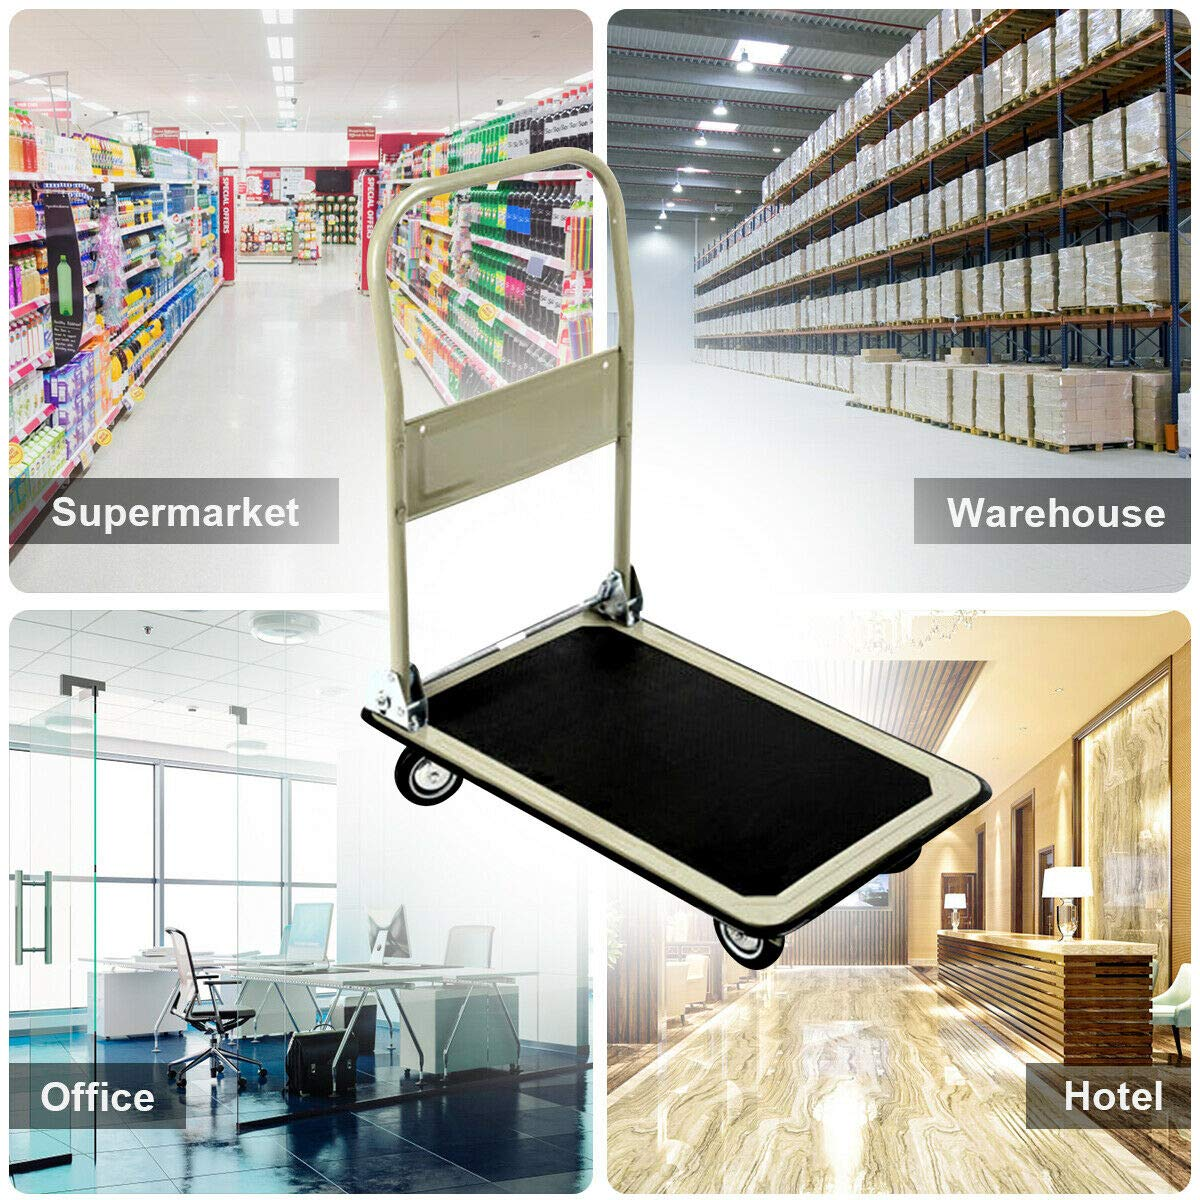 Gray 330lbs Platform Cart Folding Foldable Dolly Push Hand Truck Moving Warehouse Transport Heavy Large Loads(U.S. Stock) by Heize best price (Image #2)